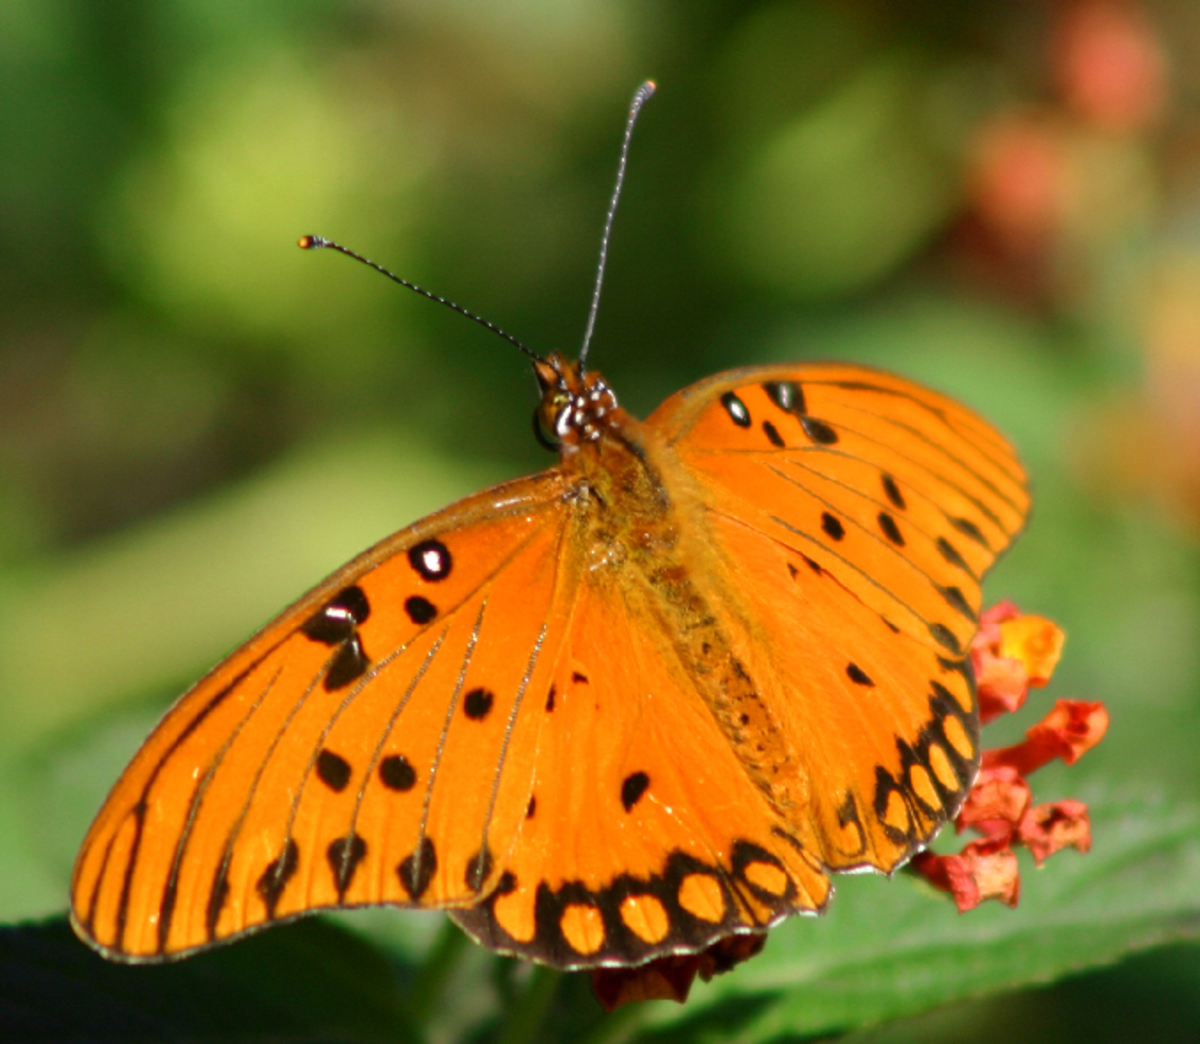 Orange Butterfly with Black Polka Dots